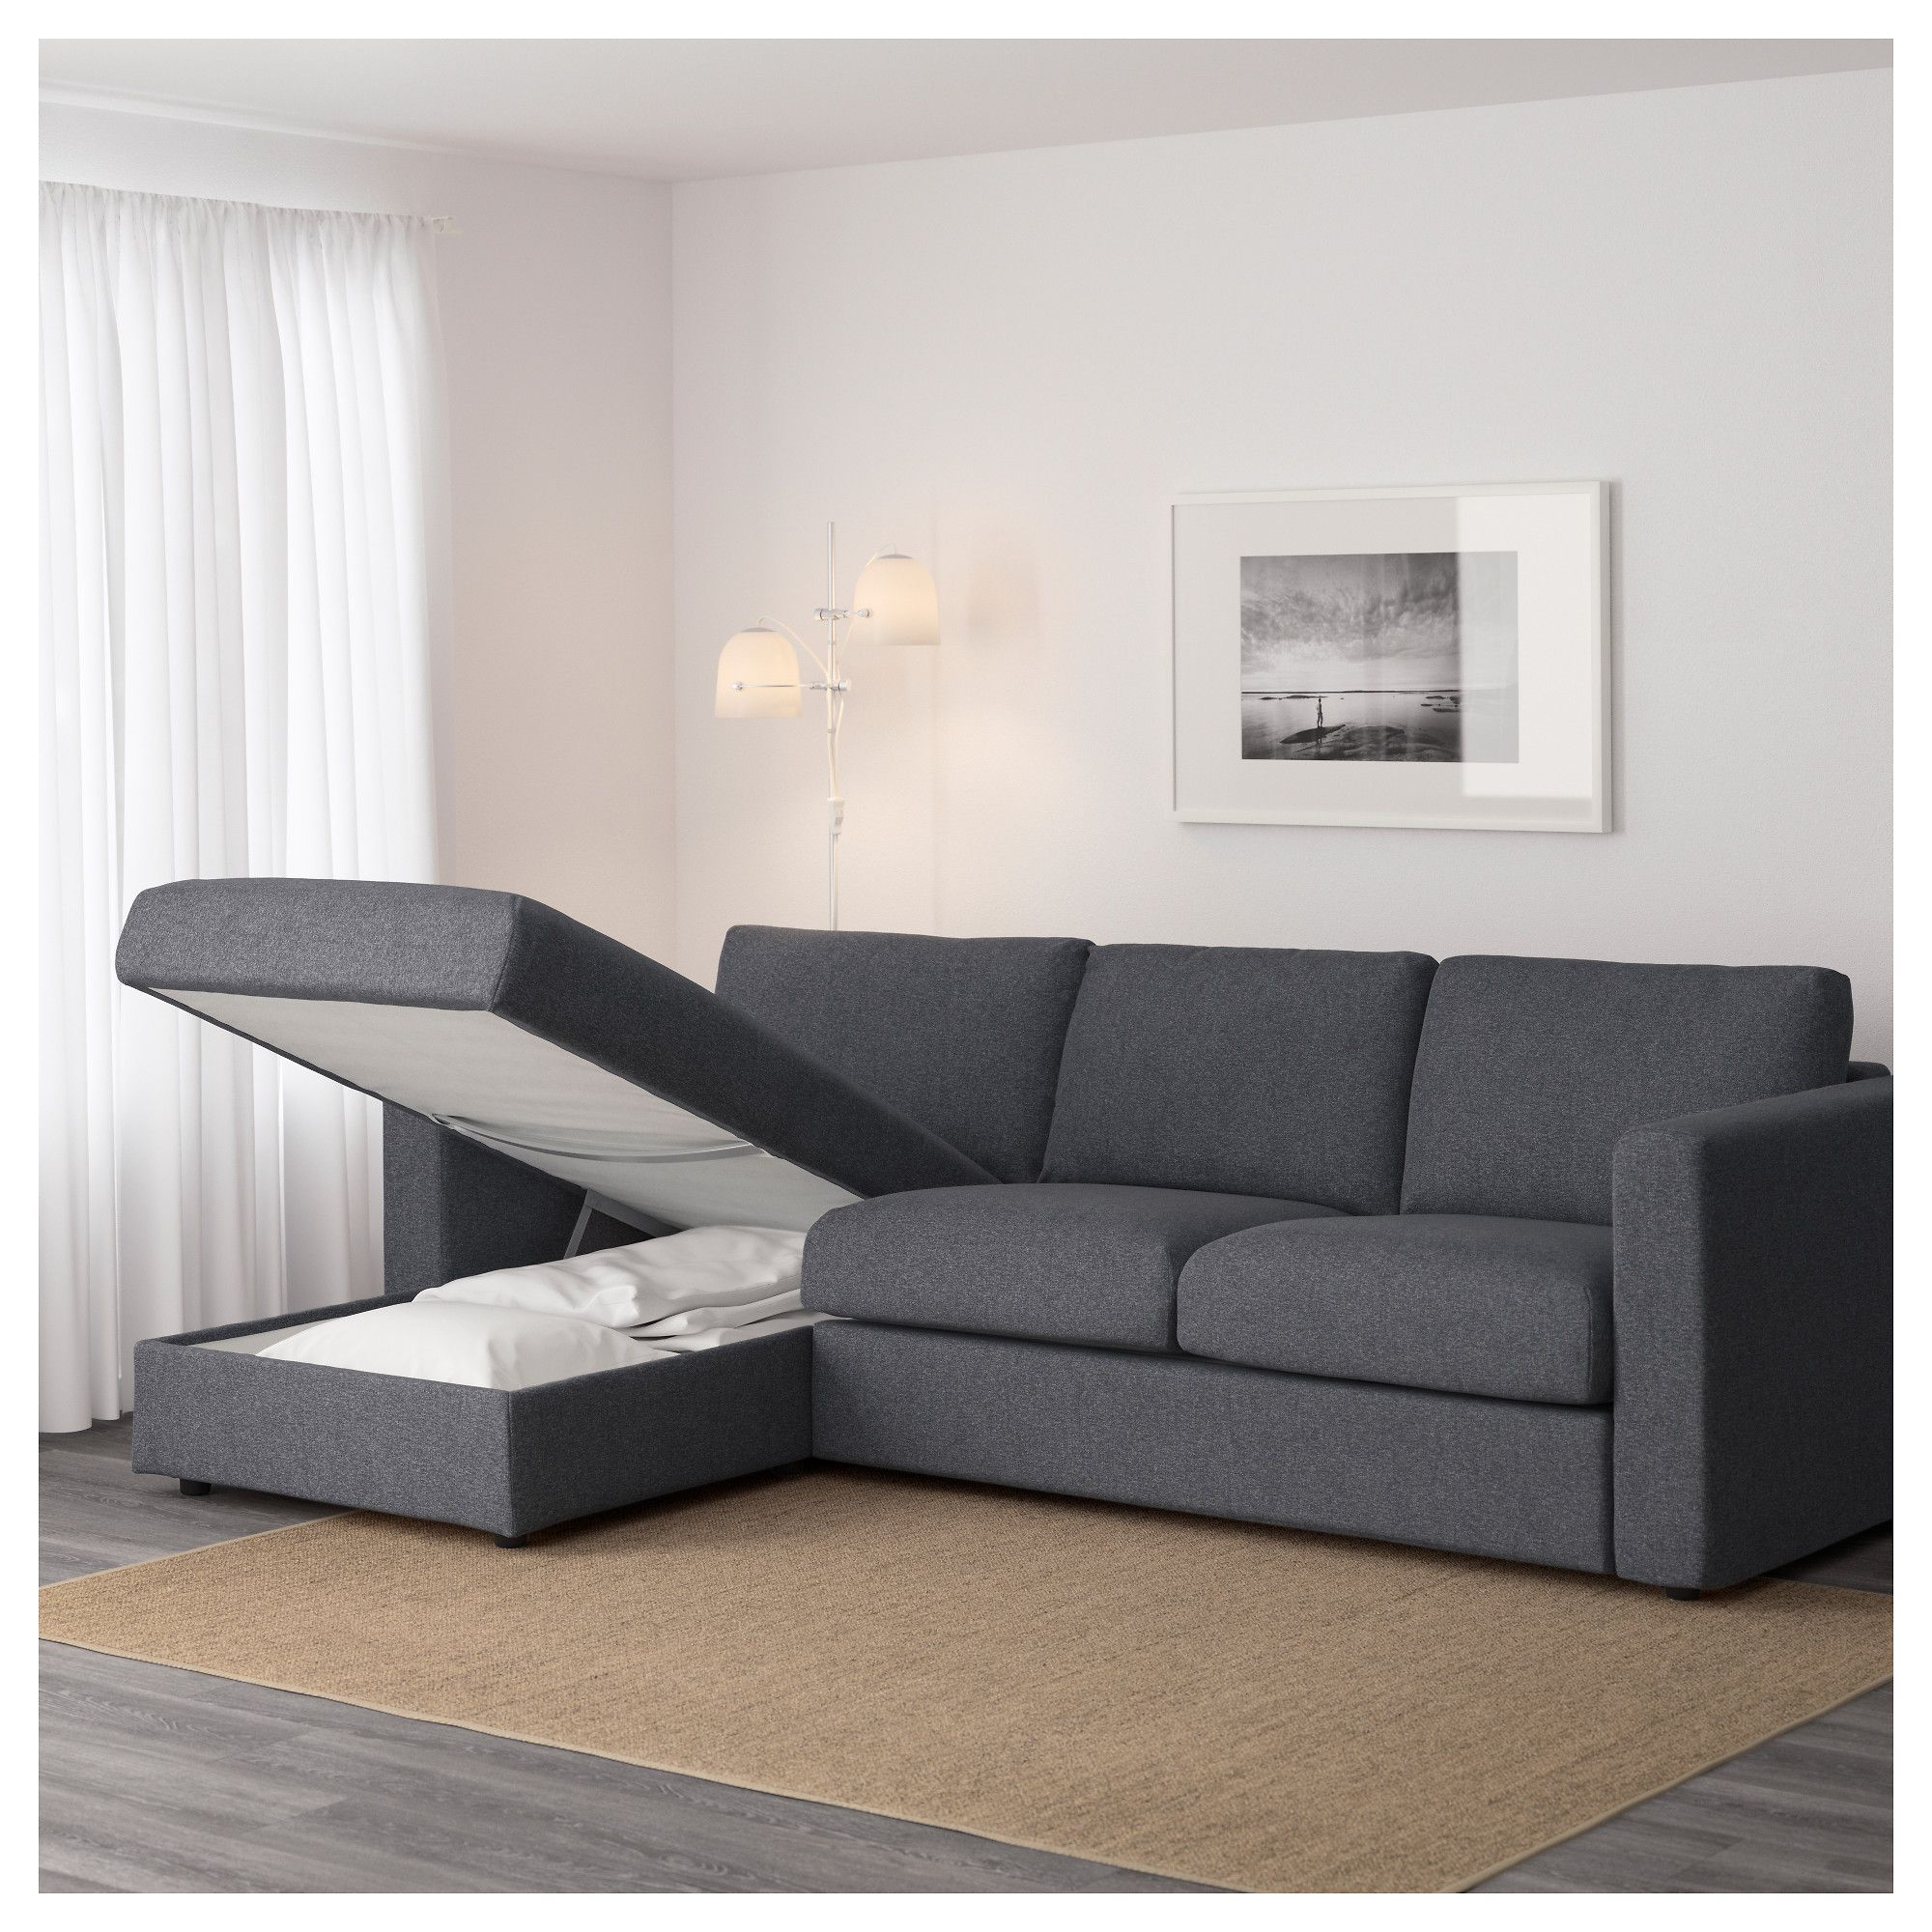 dark grey sectional sofa with chaise bunk bed philippines ikea vimle tallmyra black gray home